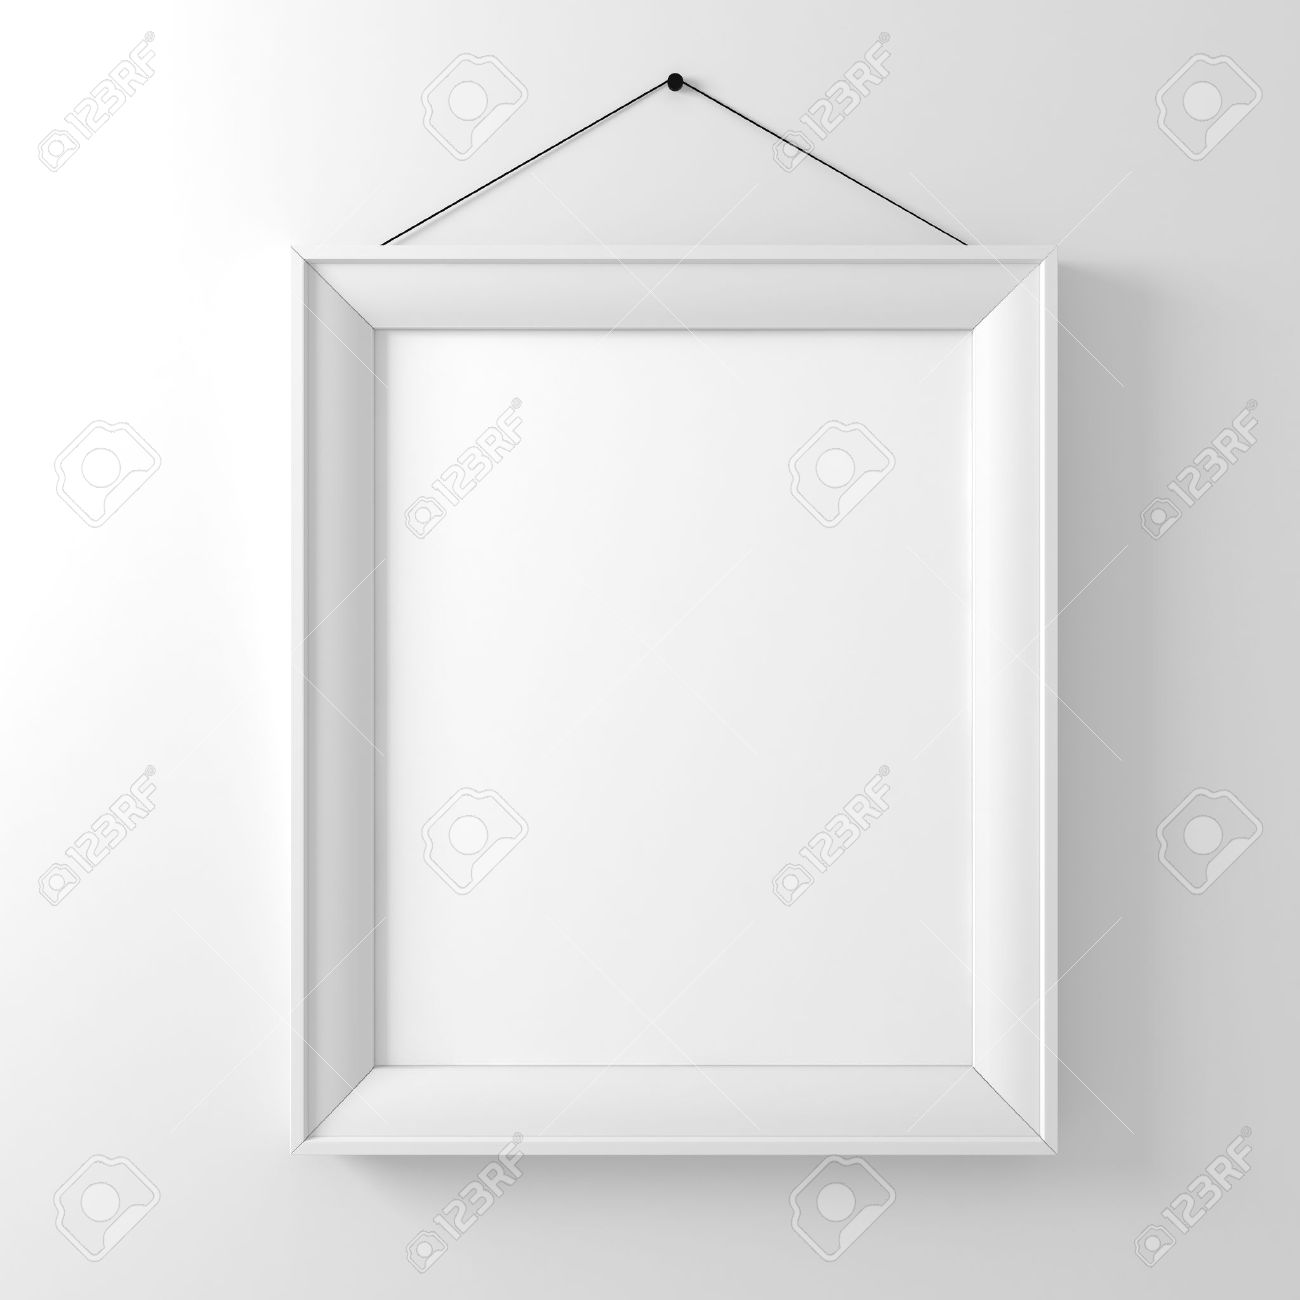 Blank Frame On White Wall Stock Photo, Picture And Royalty Free ...